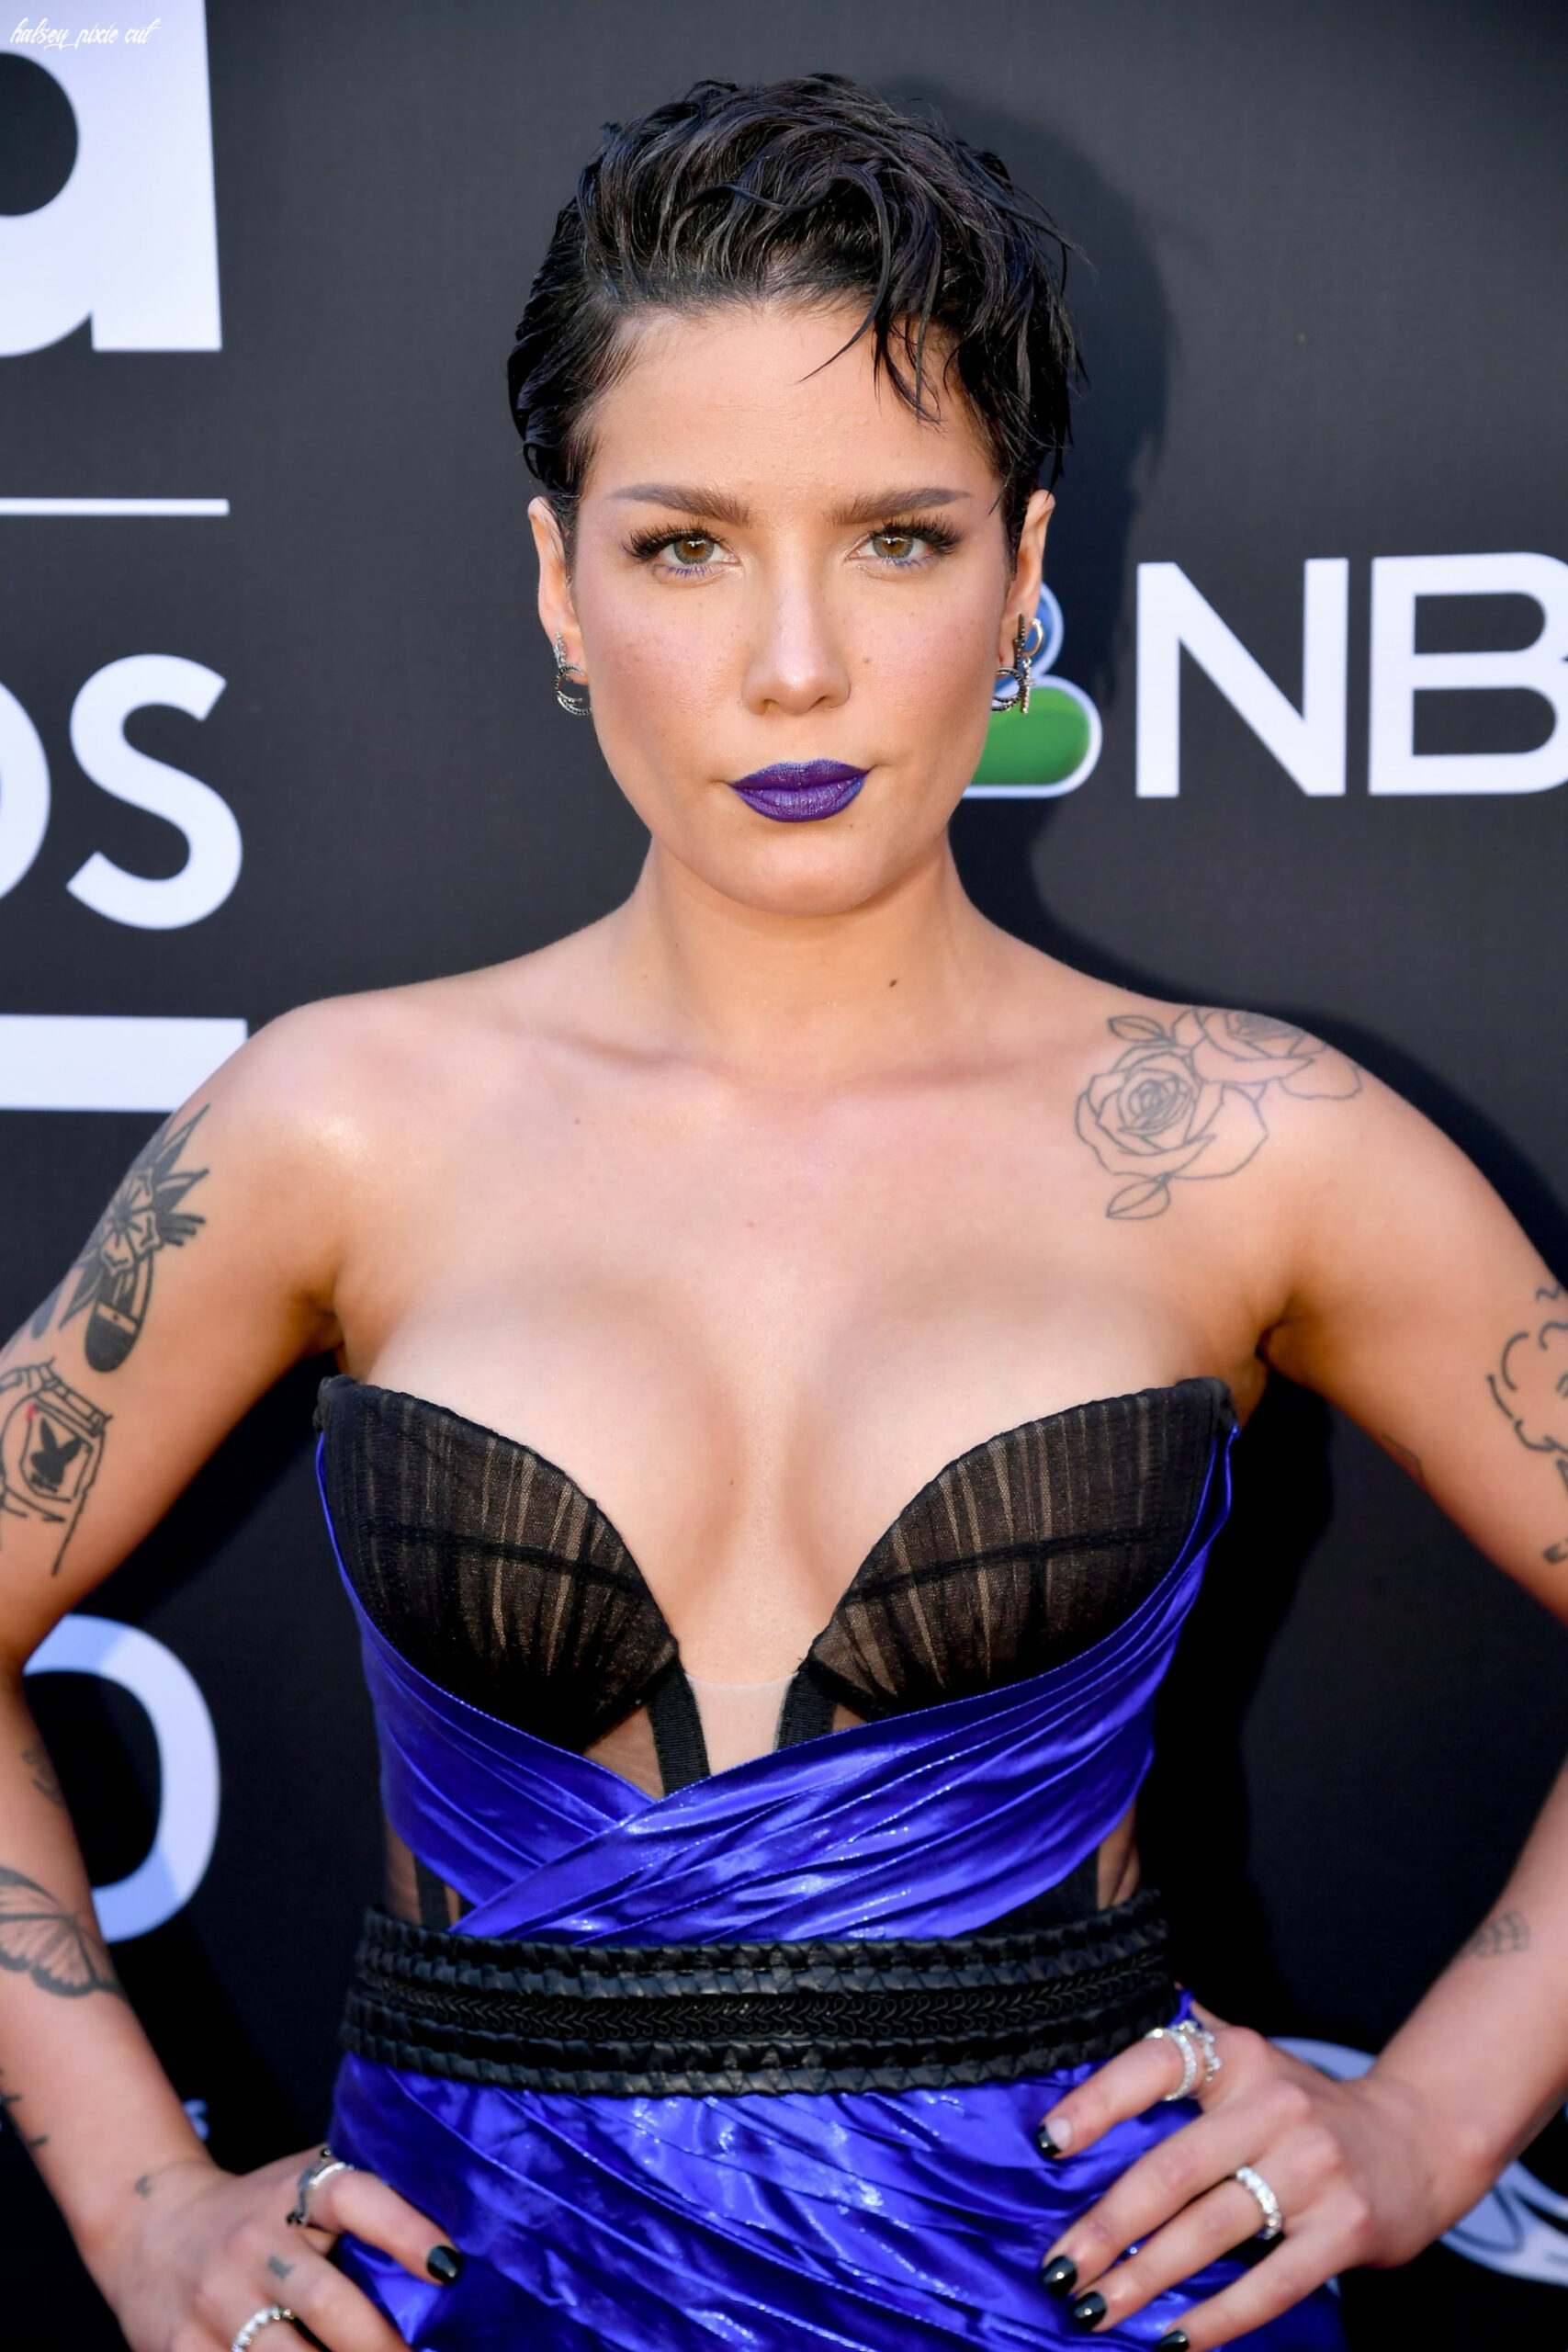 Halsey with a pixie cut | 11 celebrity pixie haircuts that will